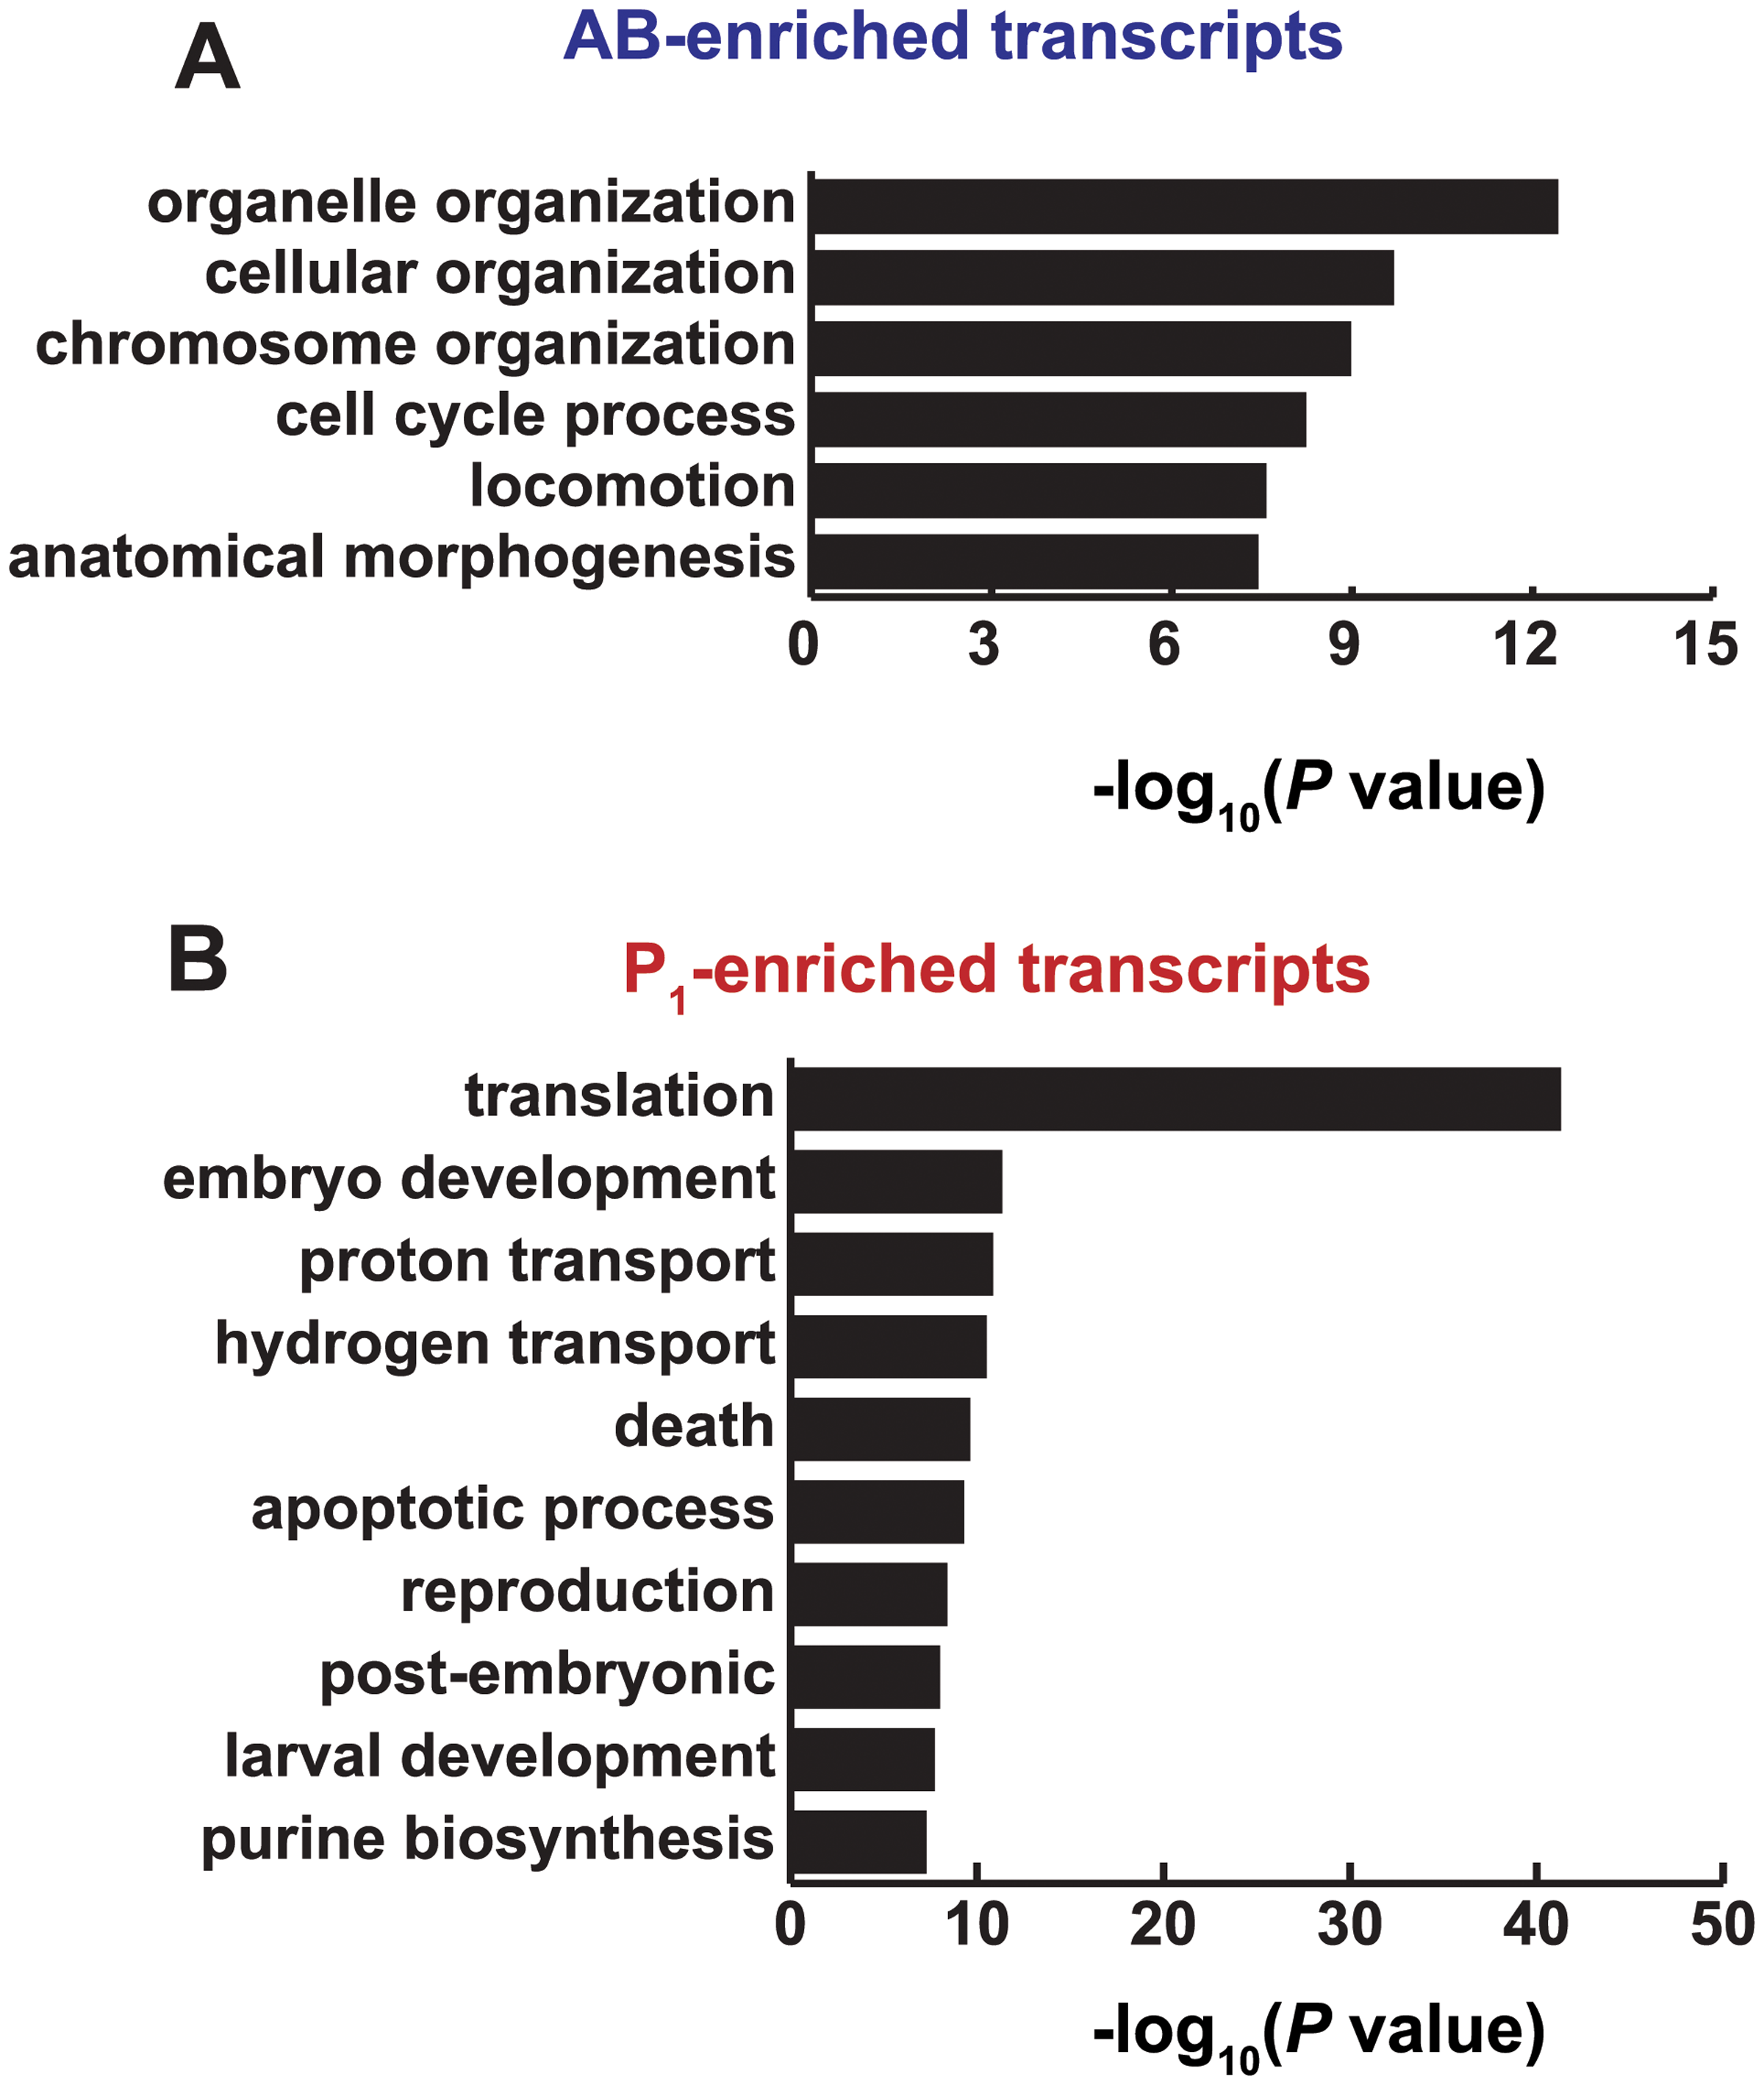 Functions associated with AB and P<sub>1</sub>-enriched transcripts.